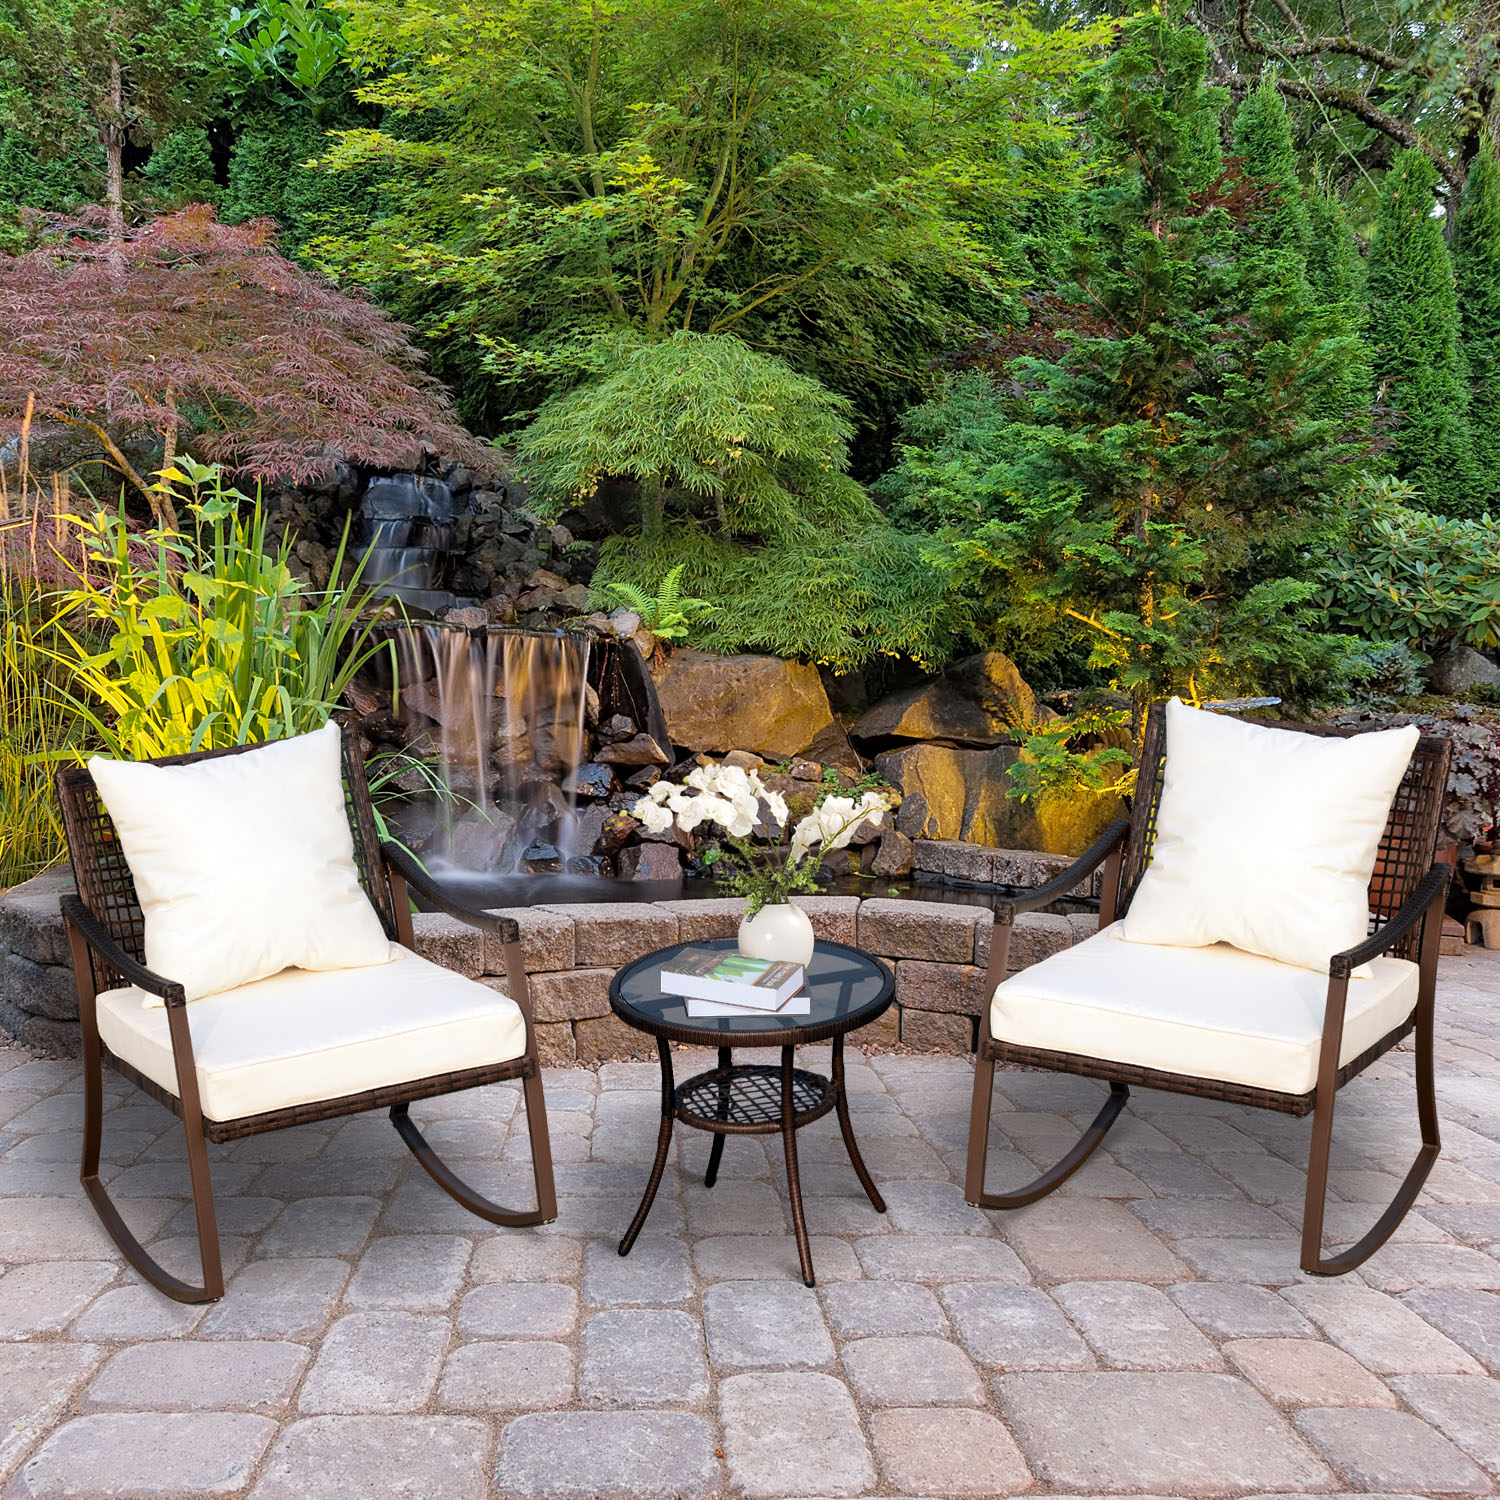 Admirable Details About 3Pc Outdoor Patio Rocking Chair Set Coffee Table Bistro Set Garden Furniture Andrewgaddart Wooden Chair Designs For Living Room Andrewgaddartcom